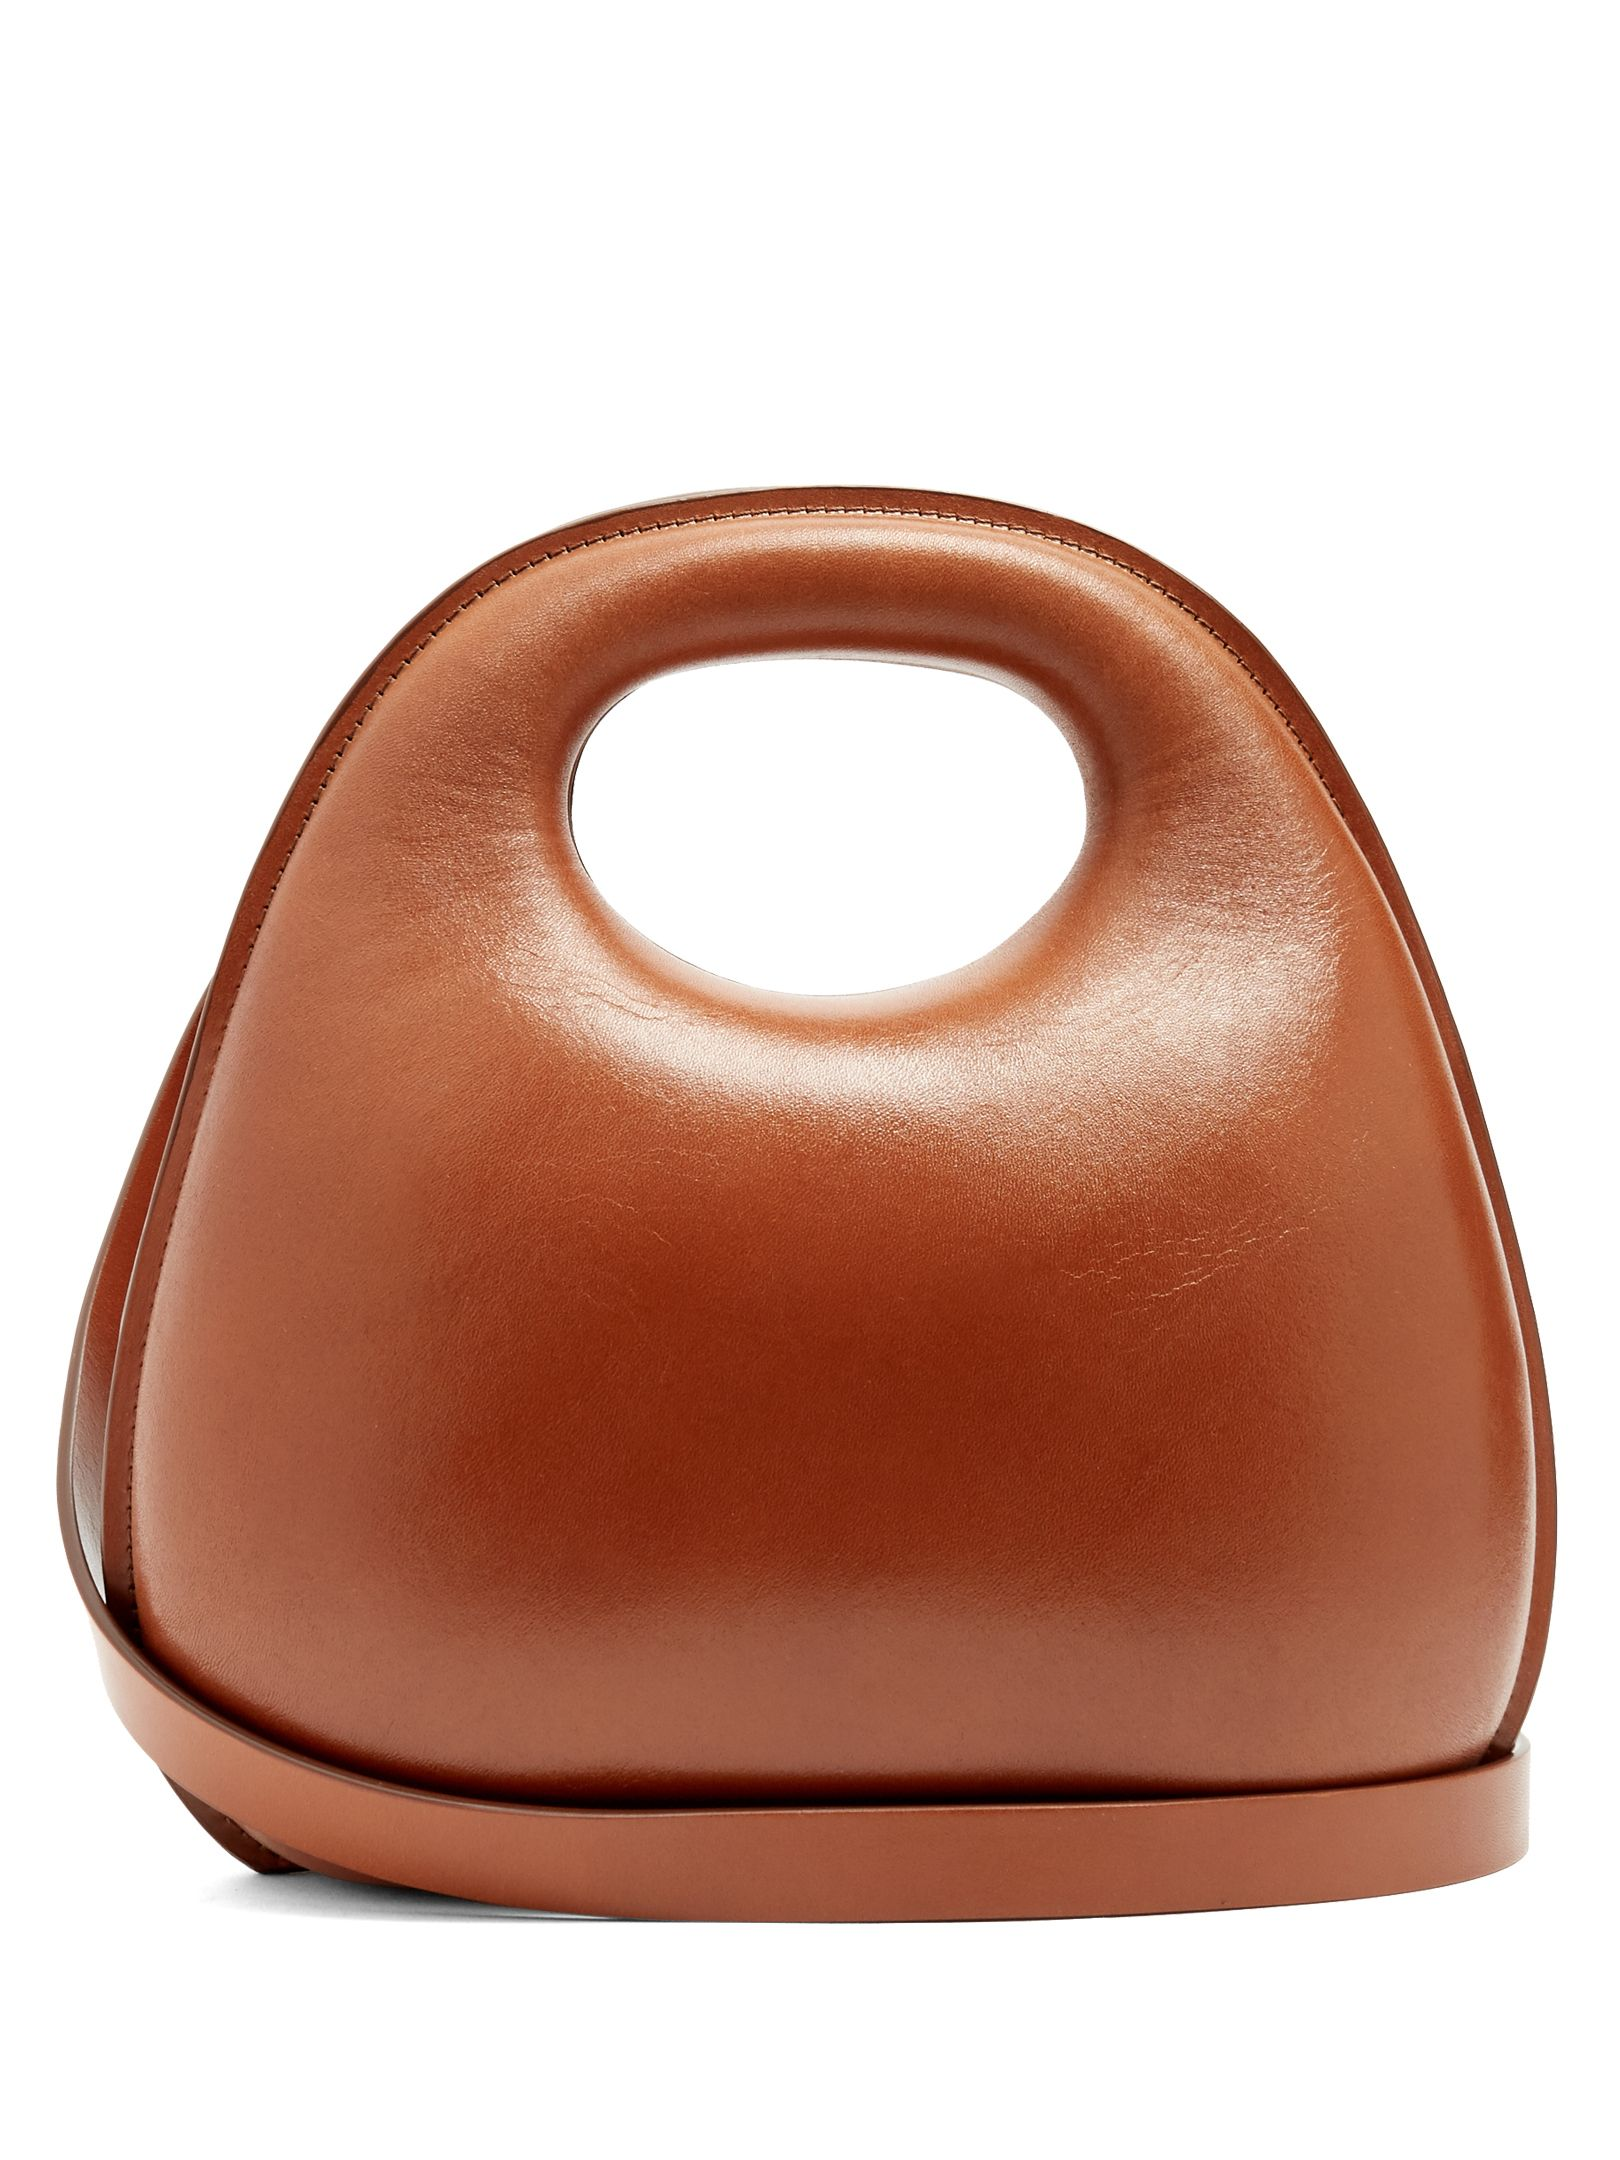 7abb6a59ac Click here to buy Lemaire Egg leather cross-body bag at MATCHESFASHION.COM